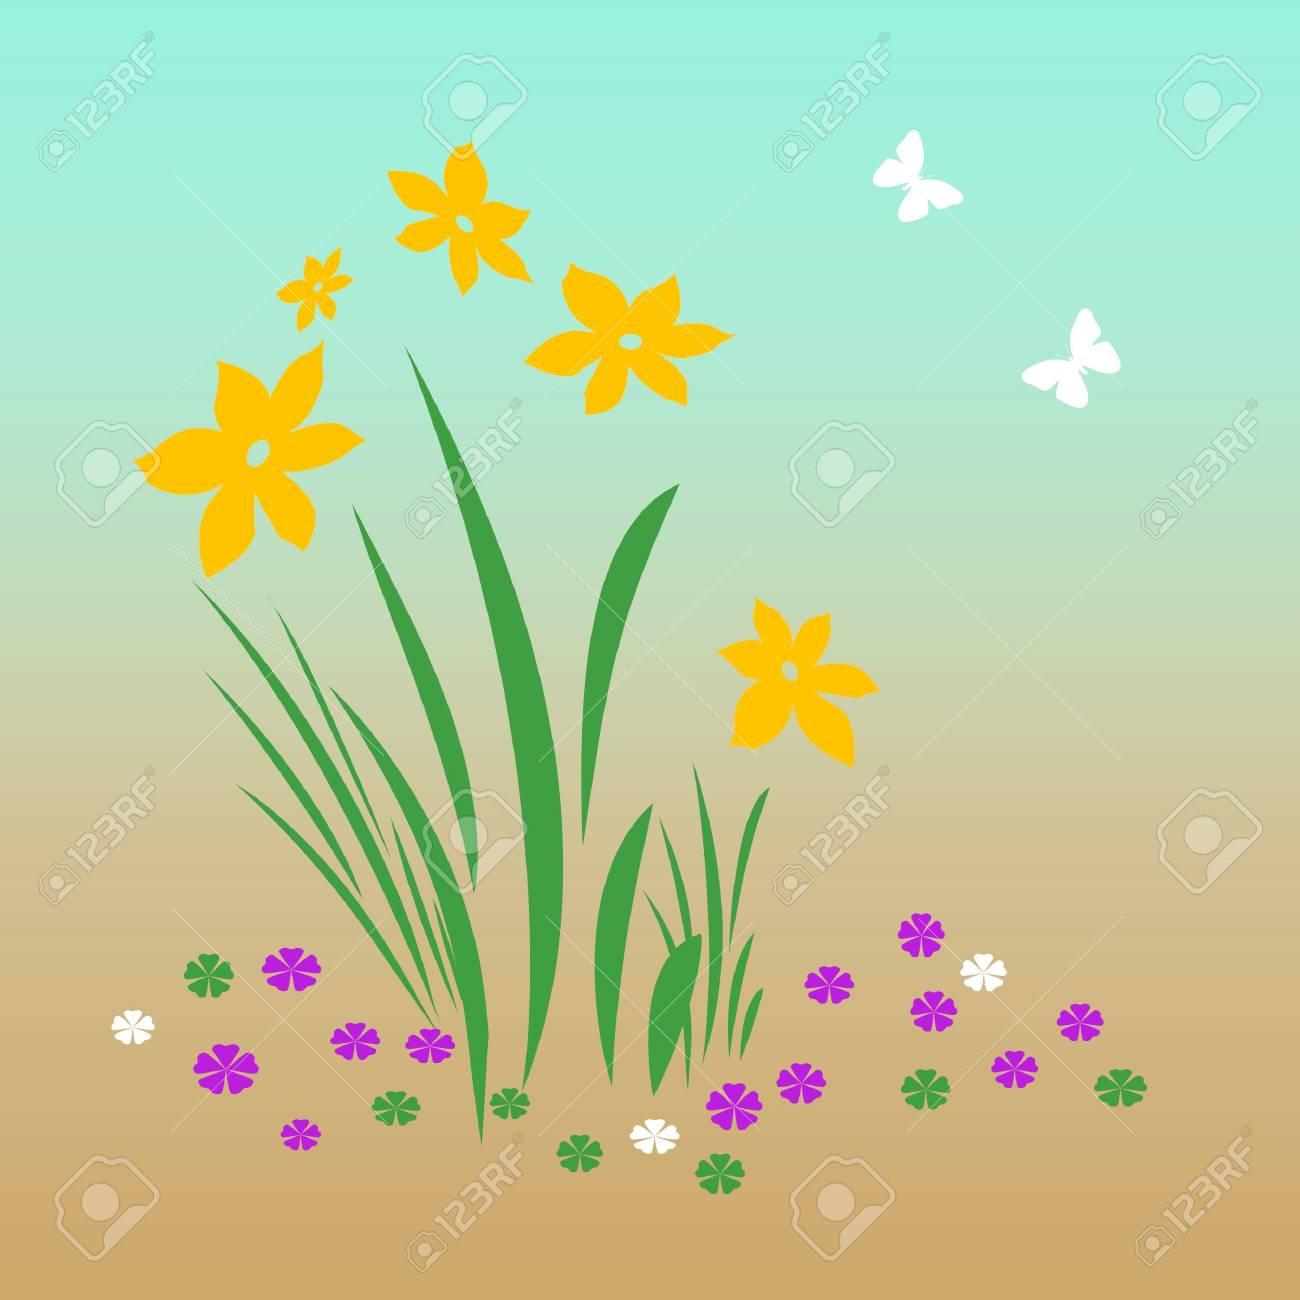 bright spring flowers and butterflies on   background illustration Stock Photo - 2390897